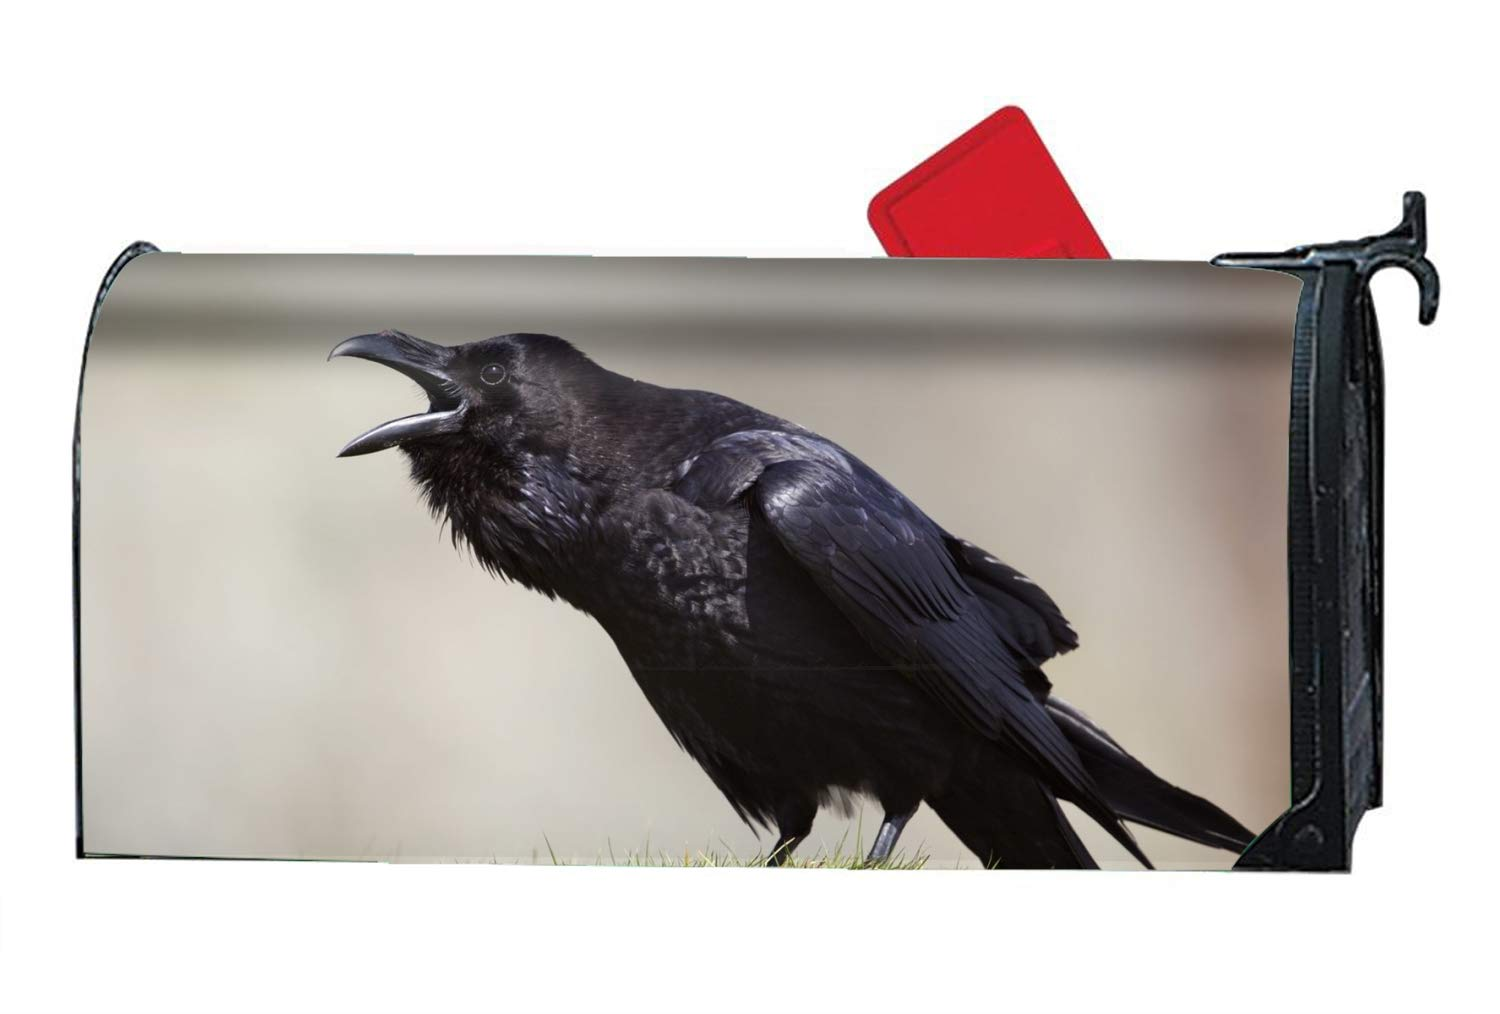 MAILL Animal Raven Birds Crows Bird Black Magnetic Mailbox Cover - Glow Decorative Vintage Vinyl Mailbox Wrap for Standard Size by MAILL